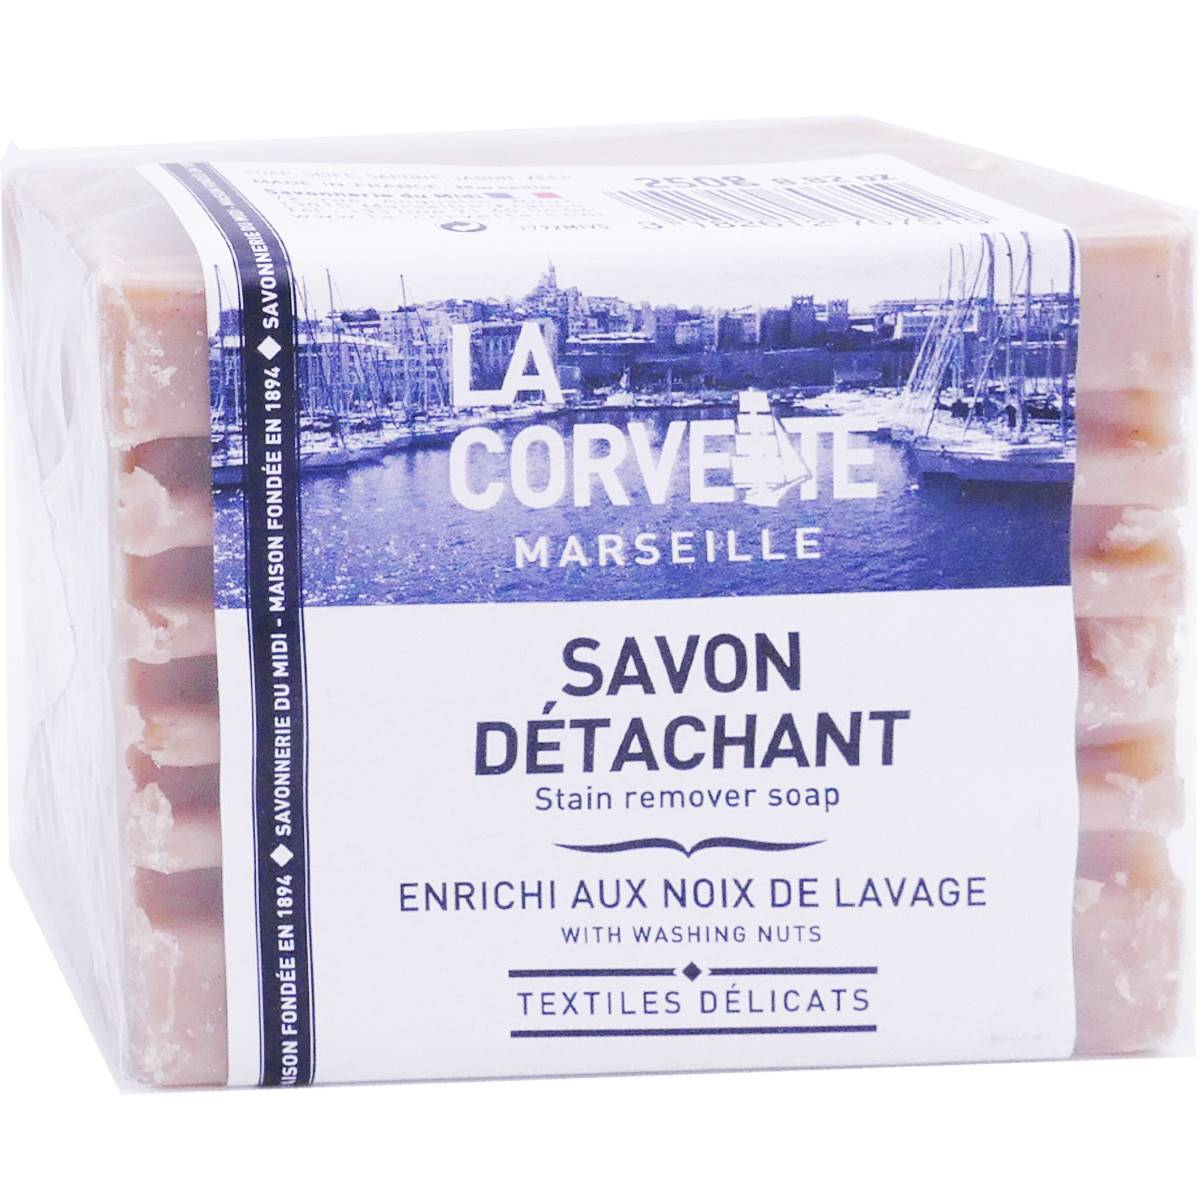 La corvette savon detachant 250g